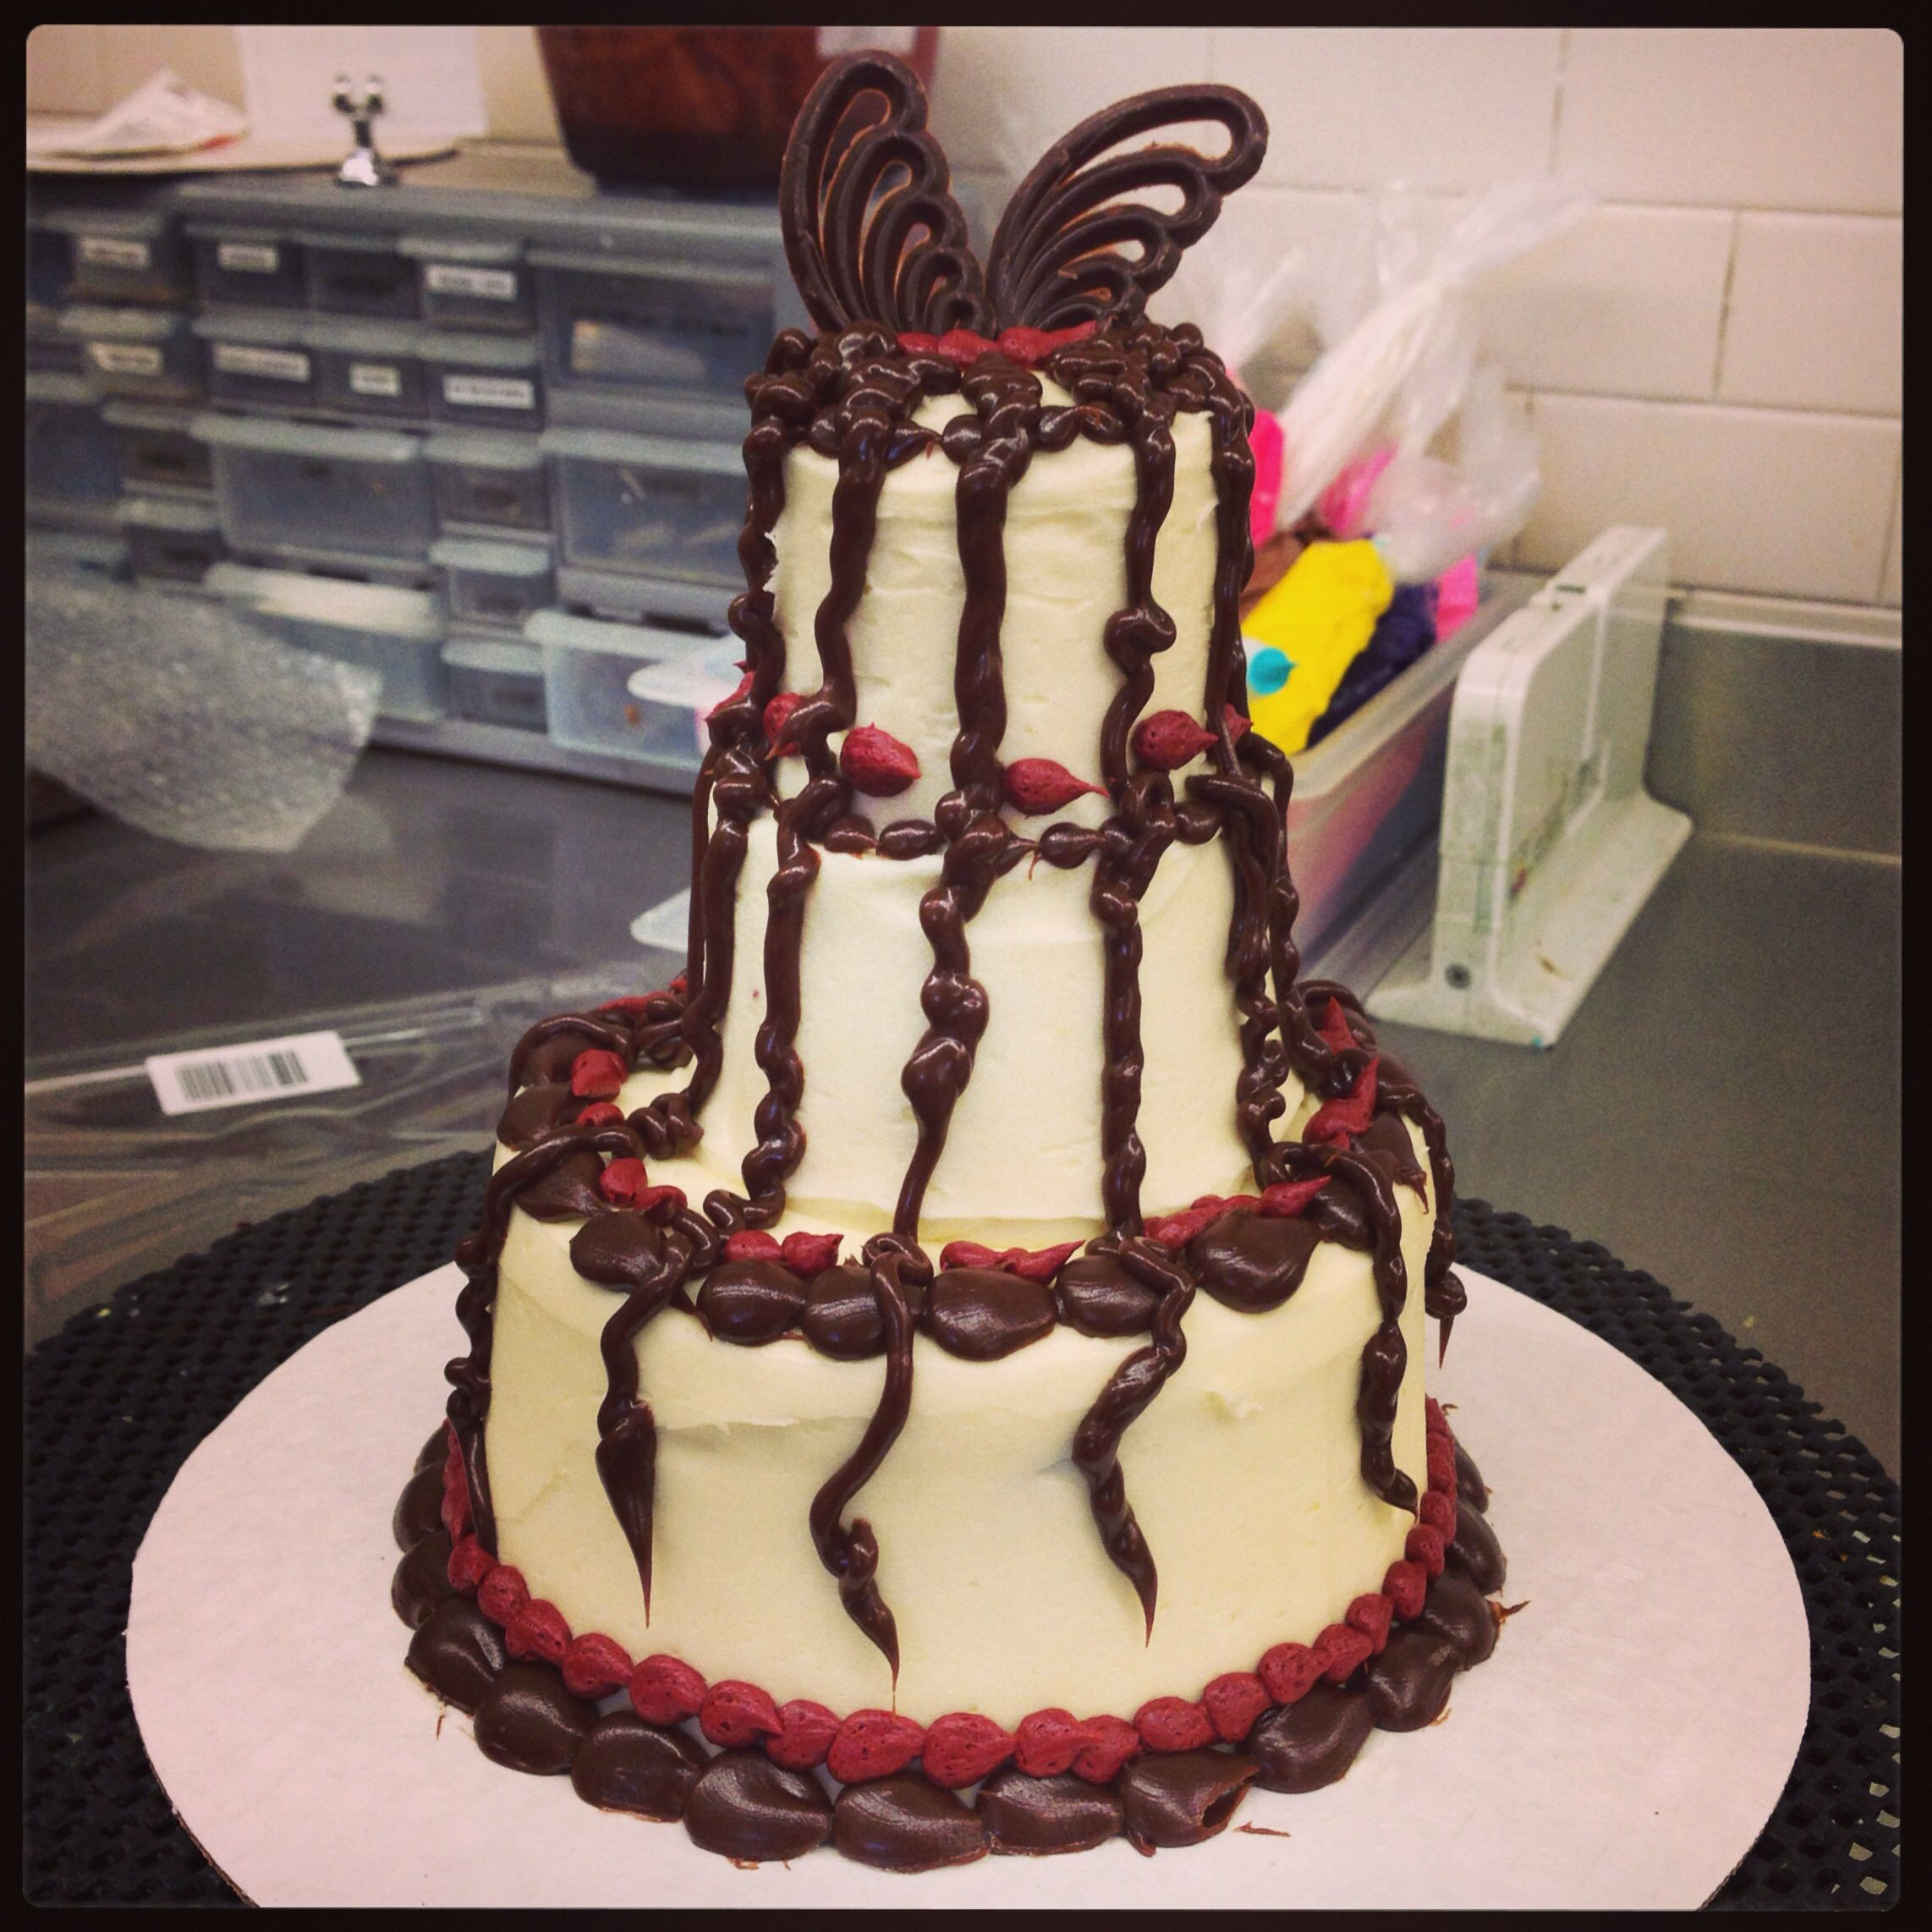 Albertsons Bakery Haggen Del Mar Bakery Cake Designs Pinterest